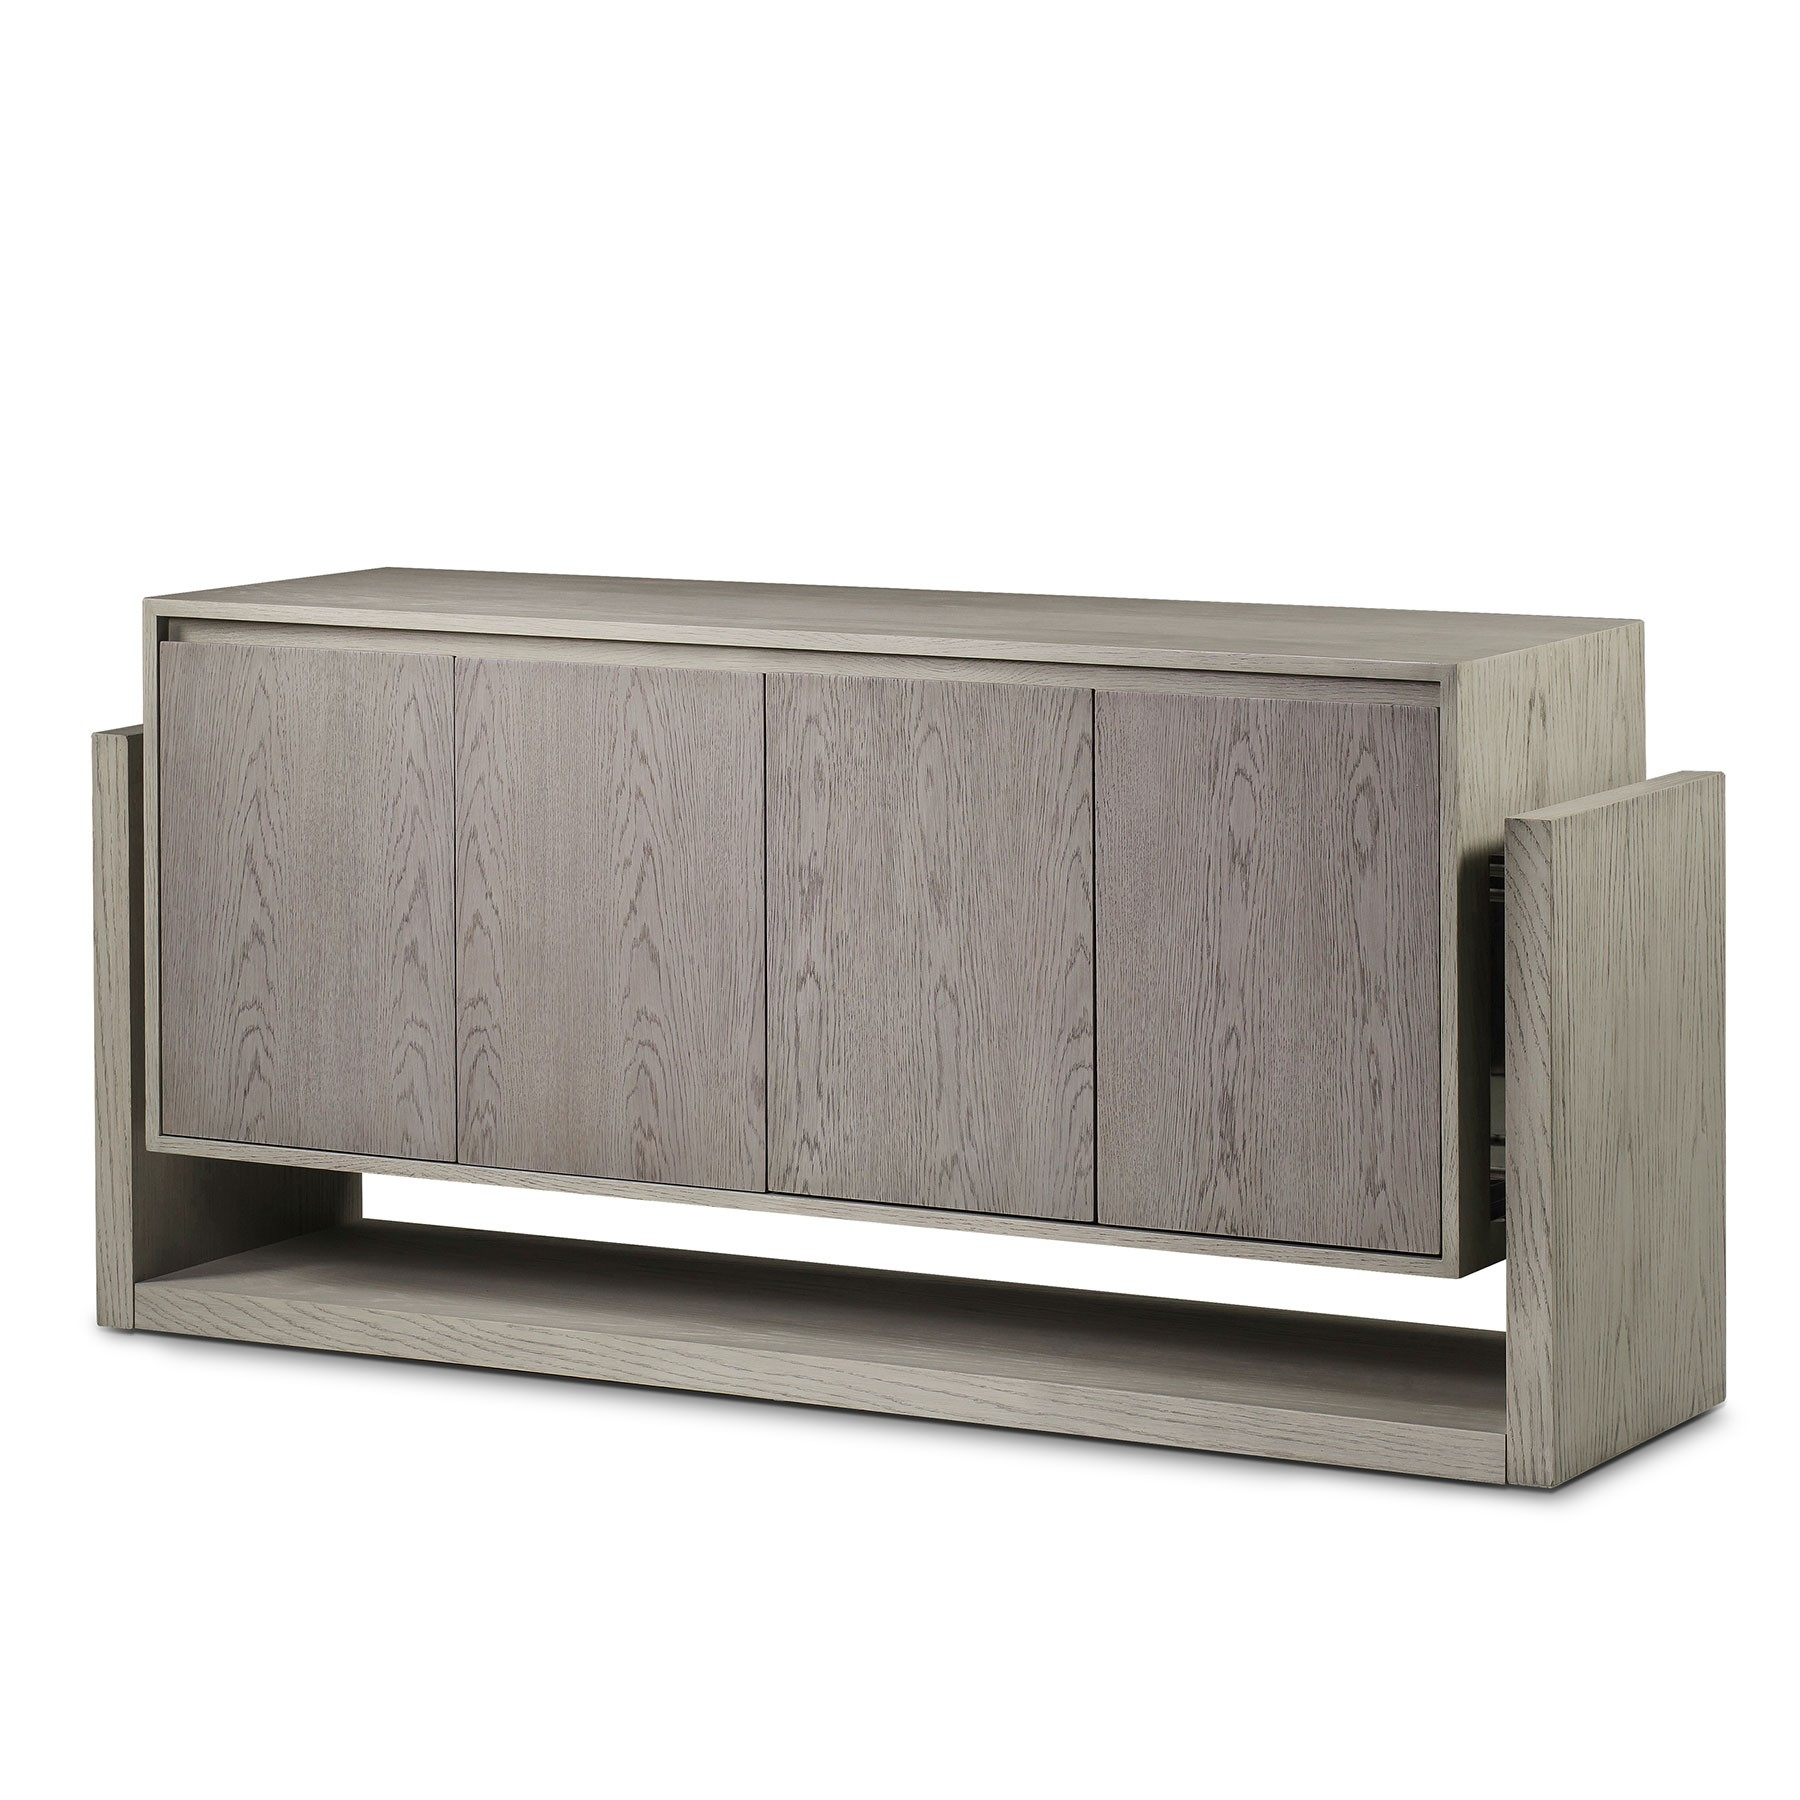 Newman 4 Door Sideboard – Whitewashed | Resource Decor 1404025 Throughout 4 Door 3 Drawer White Wash Sideboards (View 18 of 30)